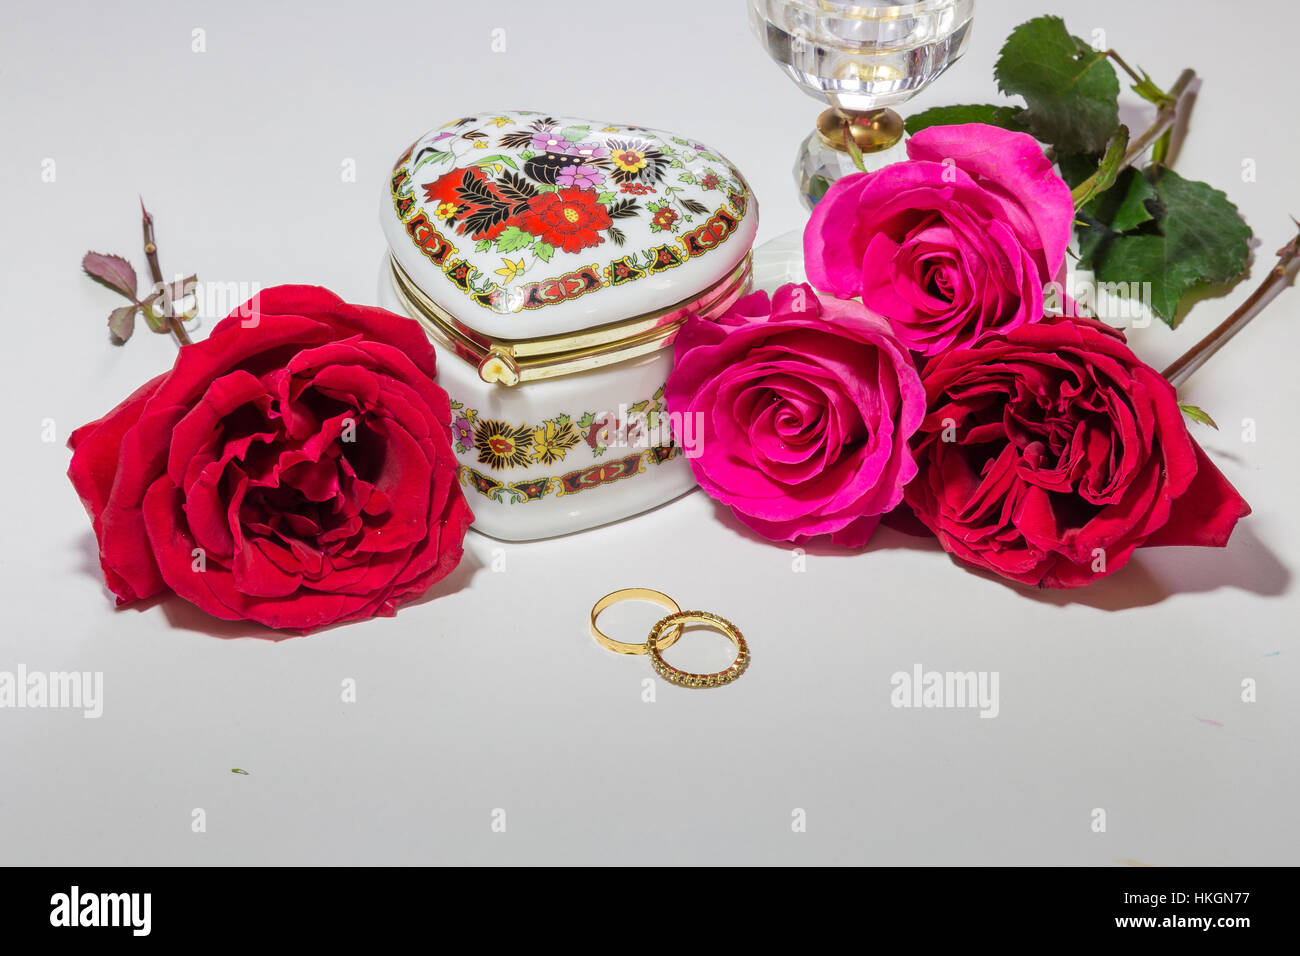 Romantic heart shaped embroidered jewelry box with bright red and